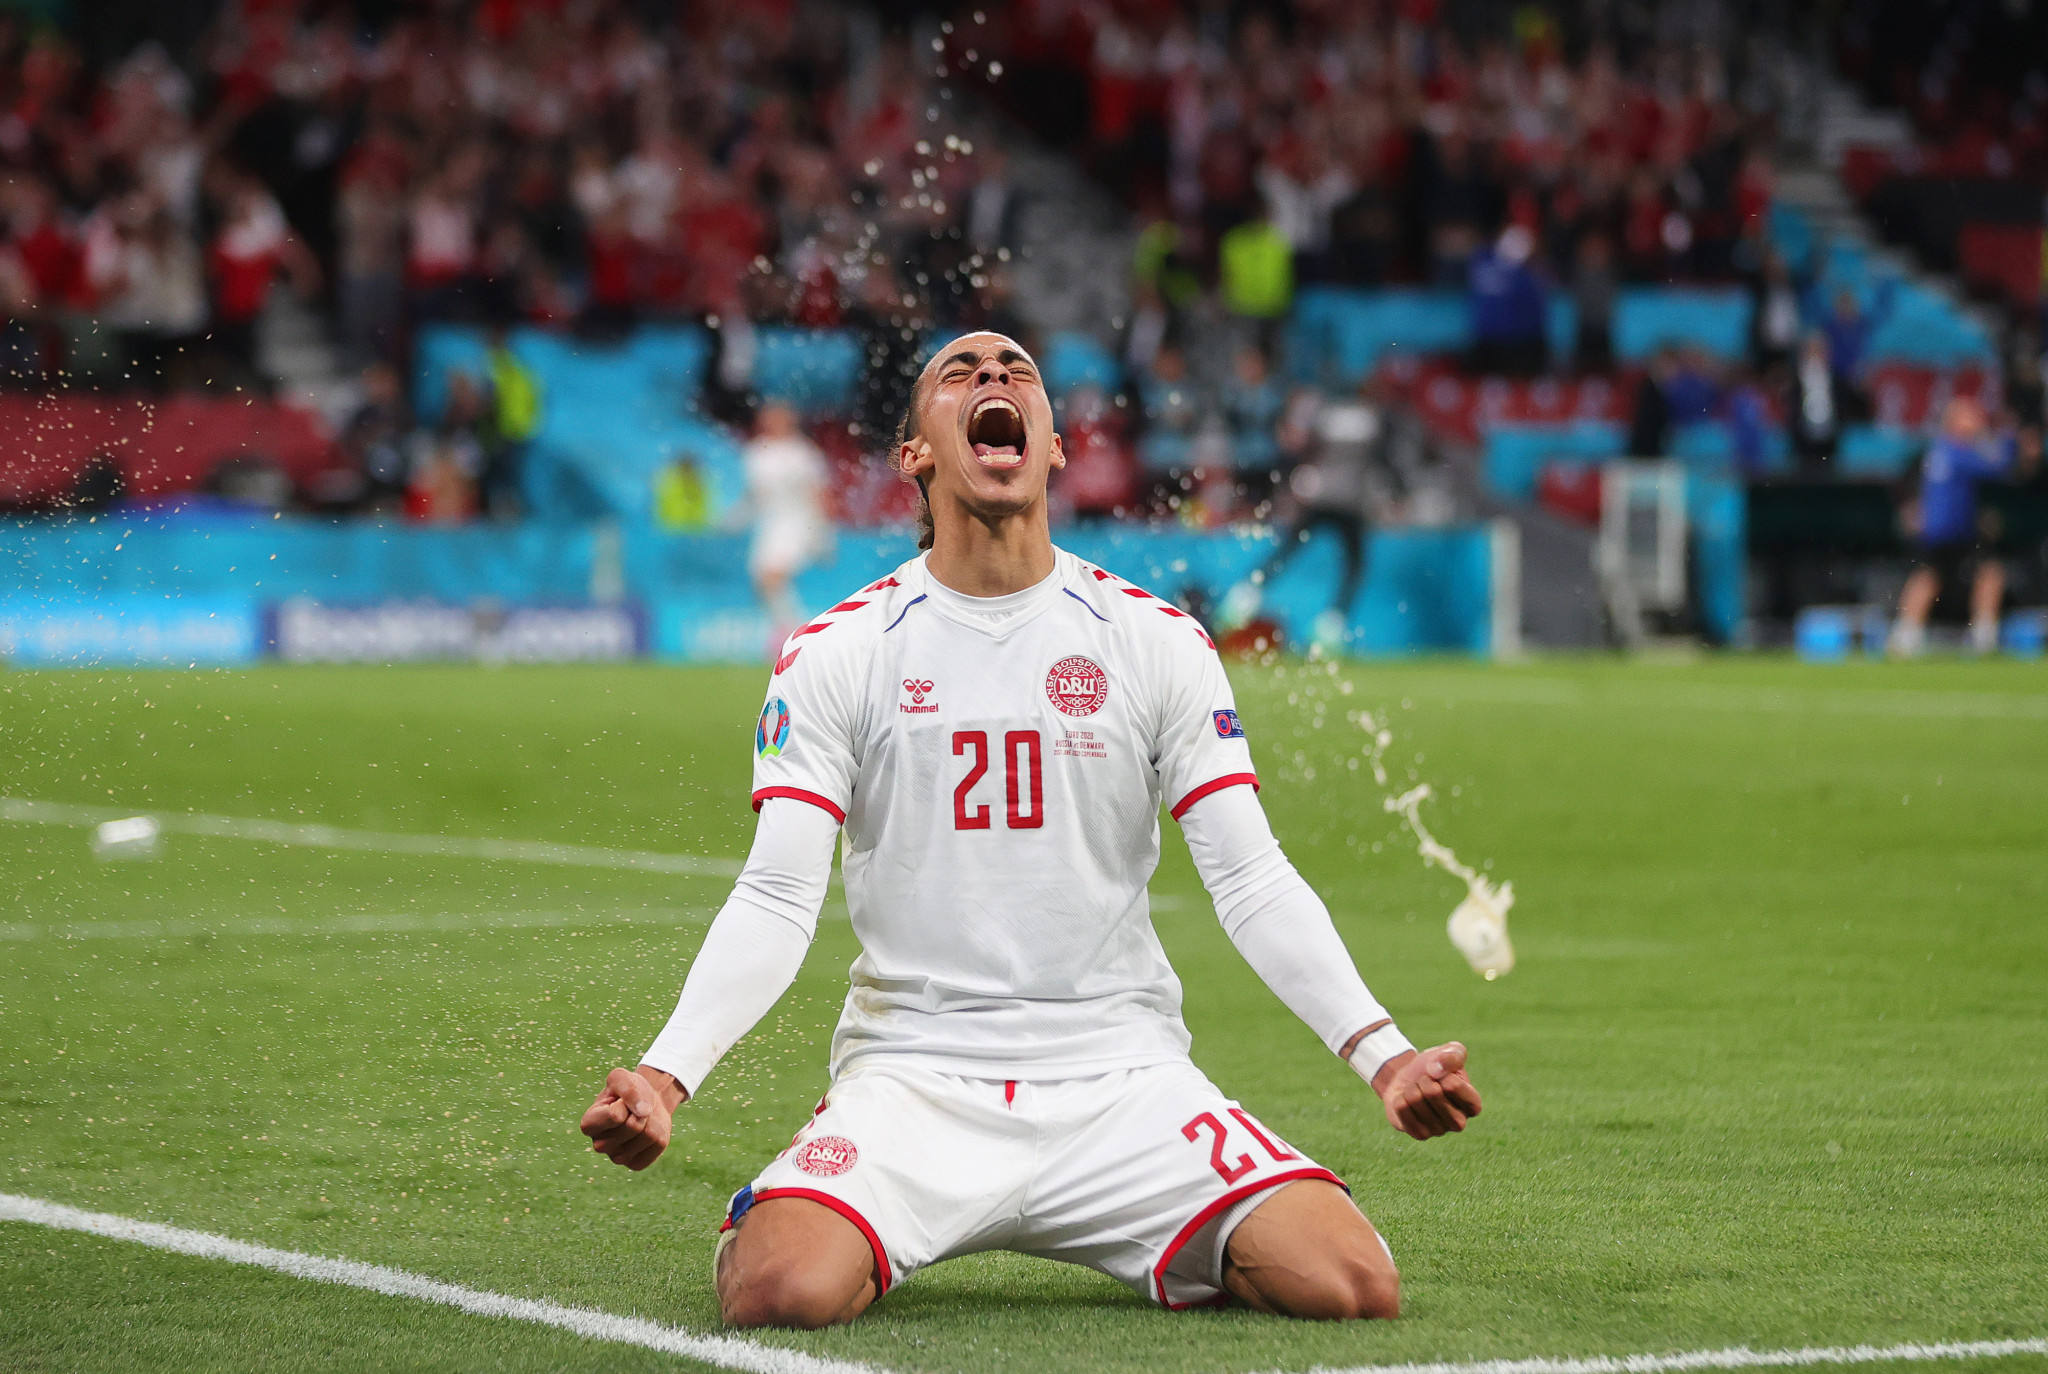 Denmark and Austria seal last 16 places at UEFA Euro 2020 after earning decisive group wins